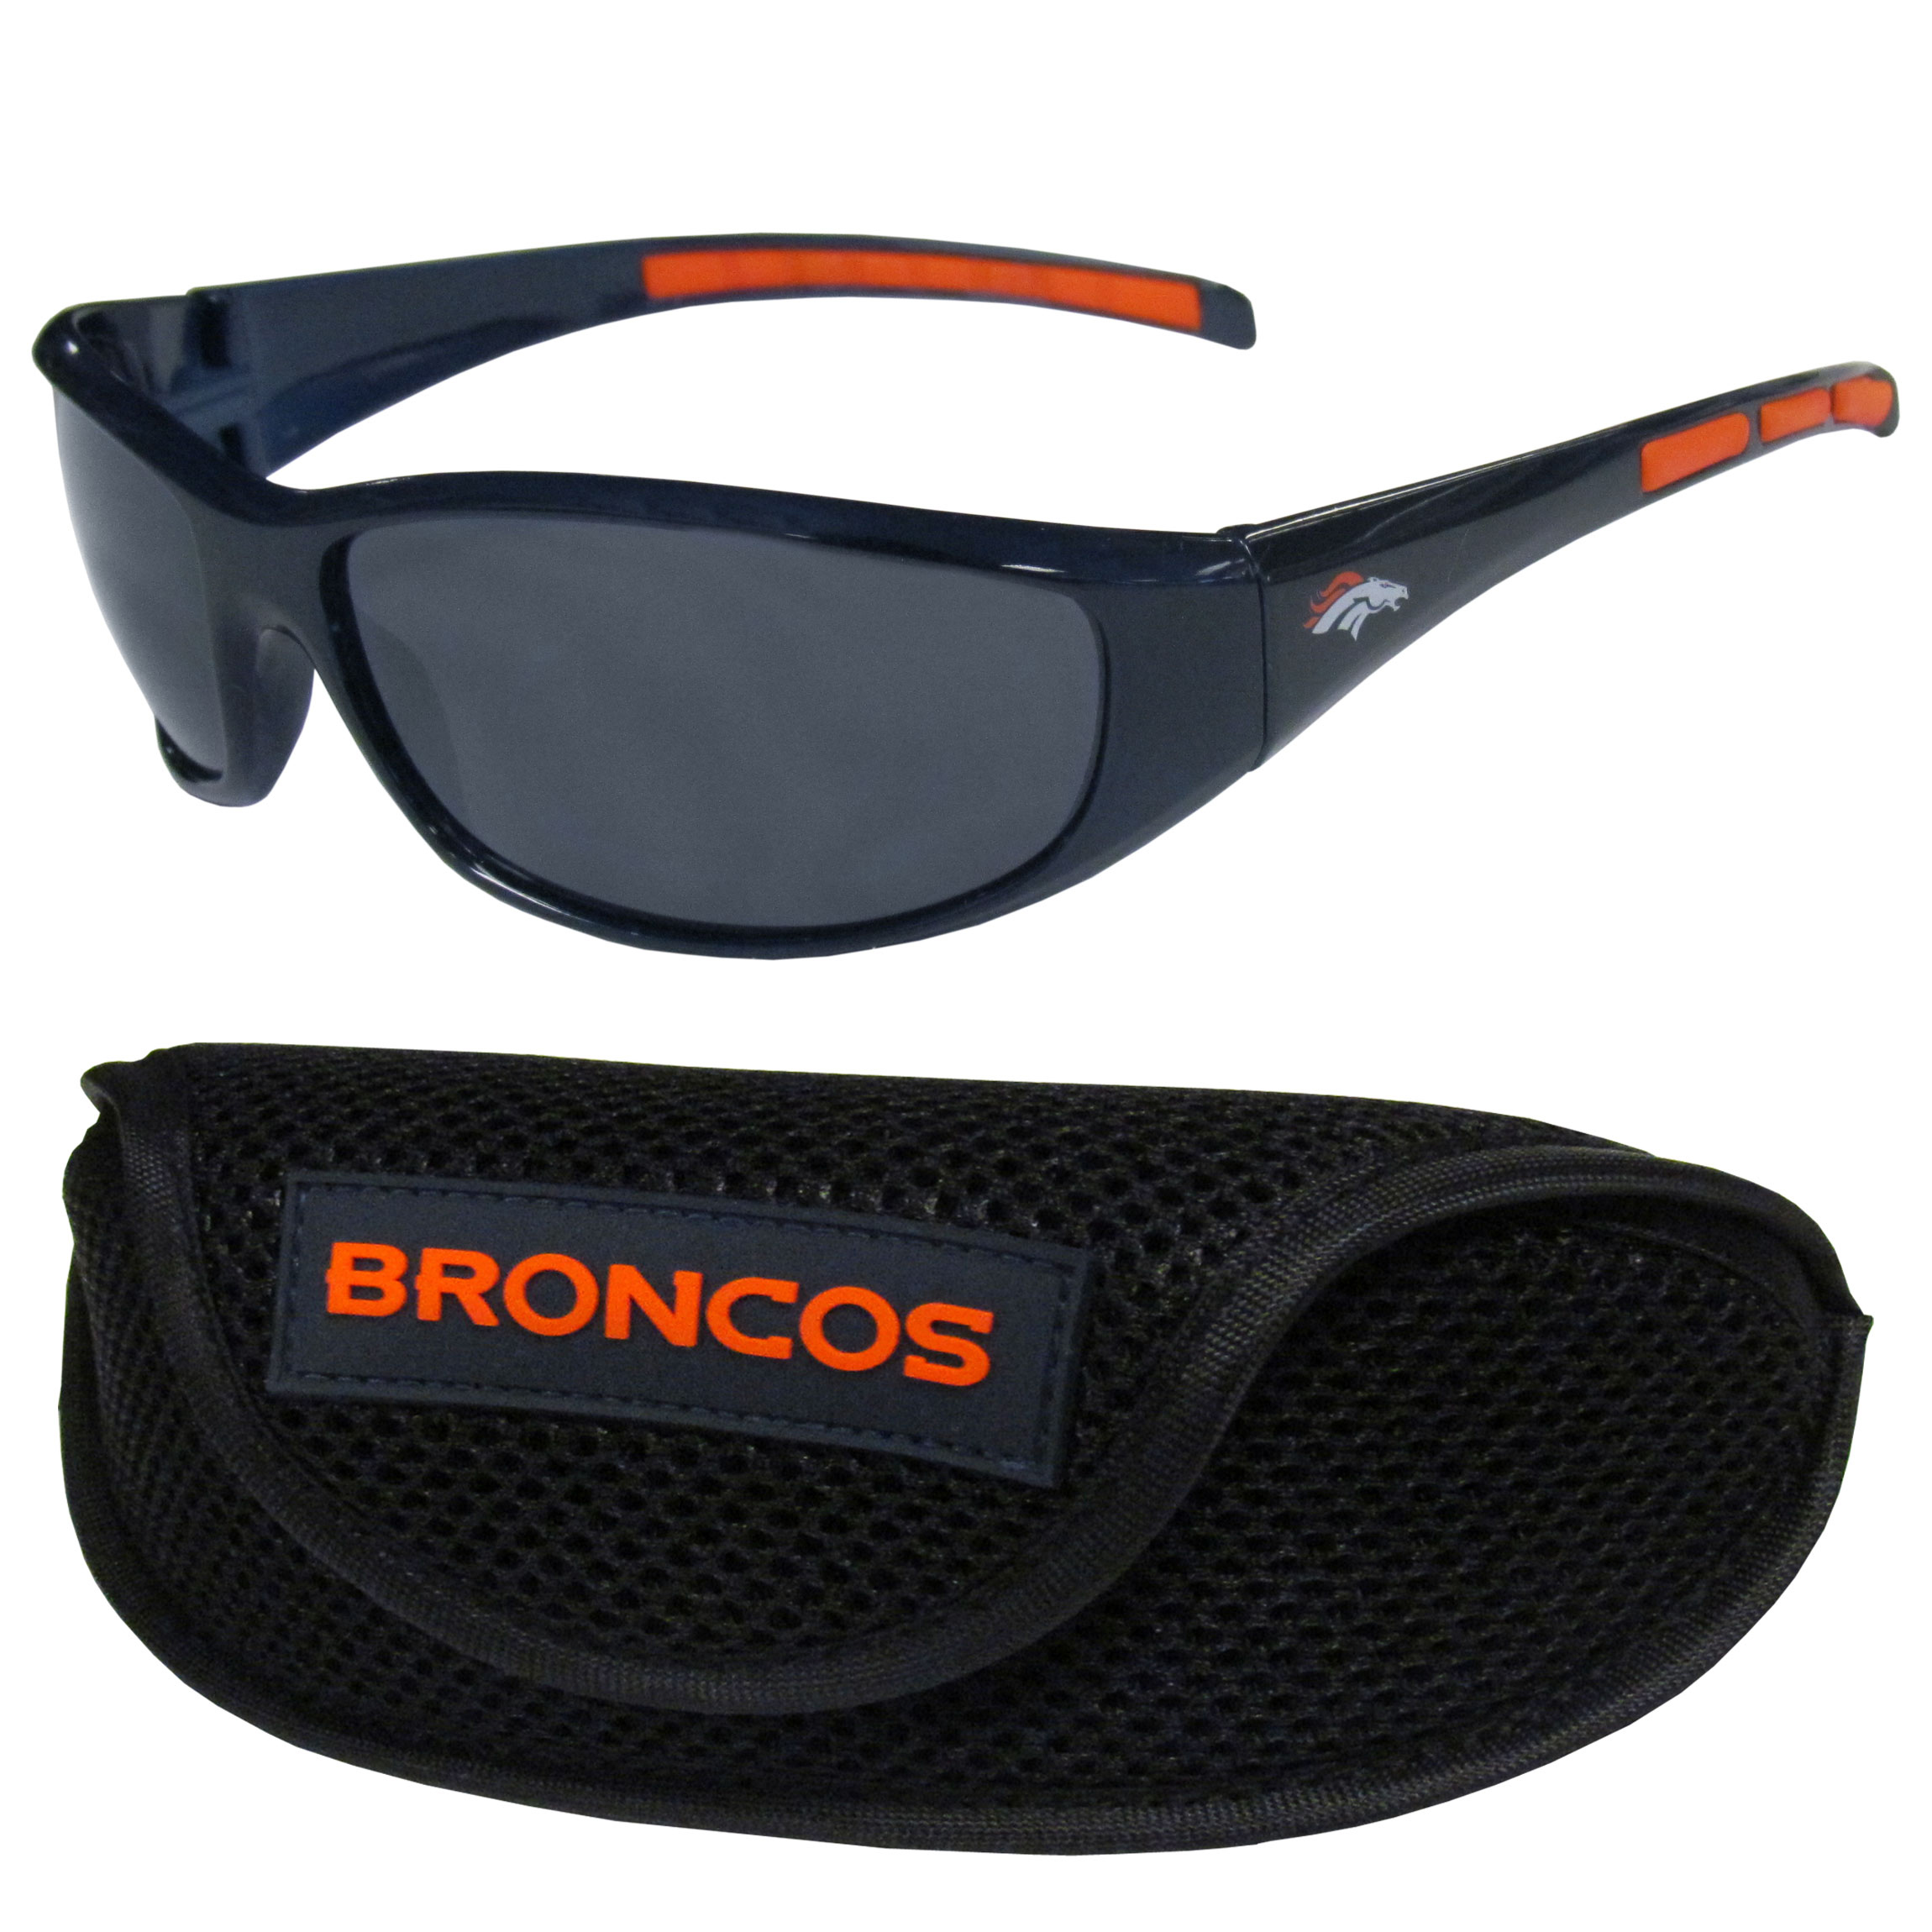 Denver Broncos Wrap Sunglass and Case Set - This great set includes a high quality pair of Denver Broncos wrap sunglasses and sport carrying case.